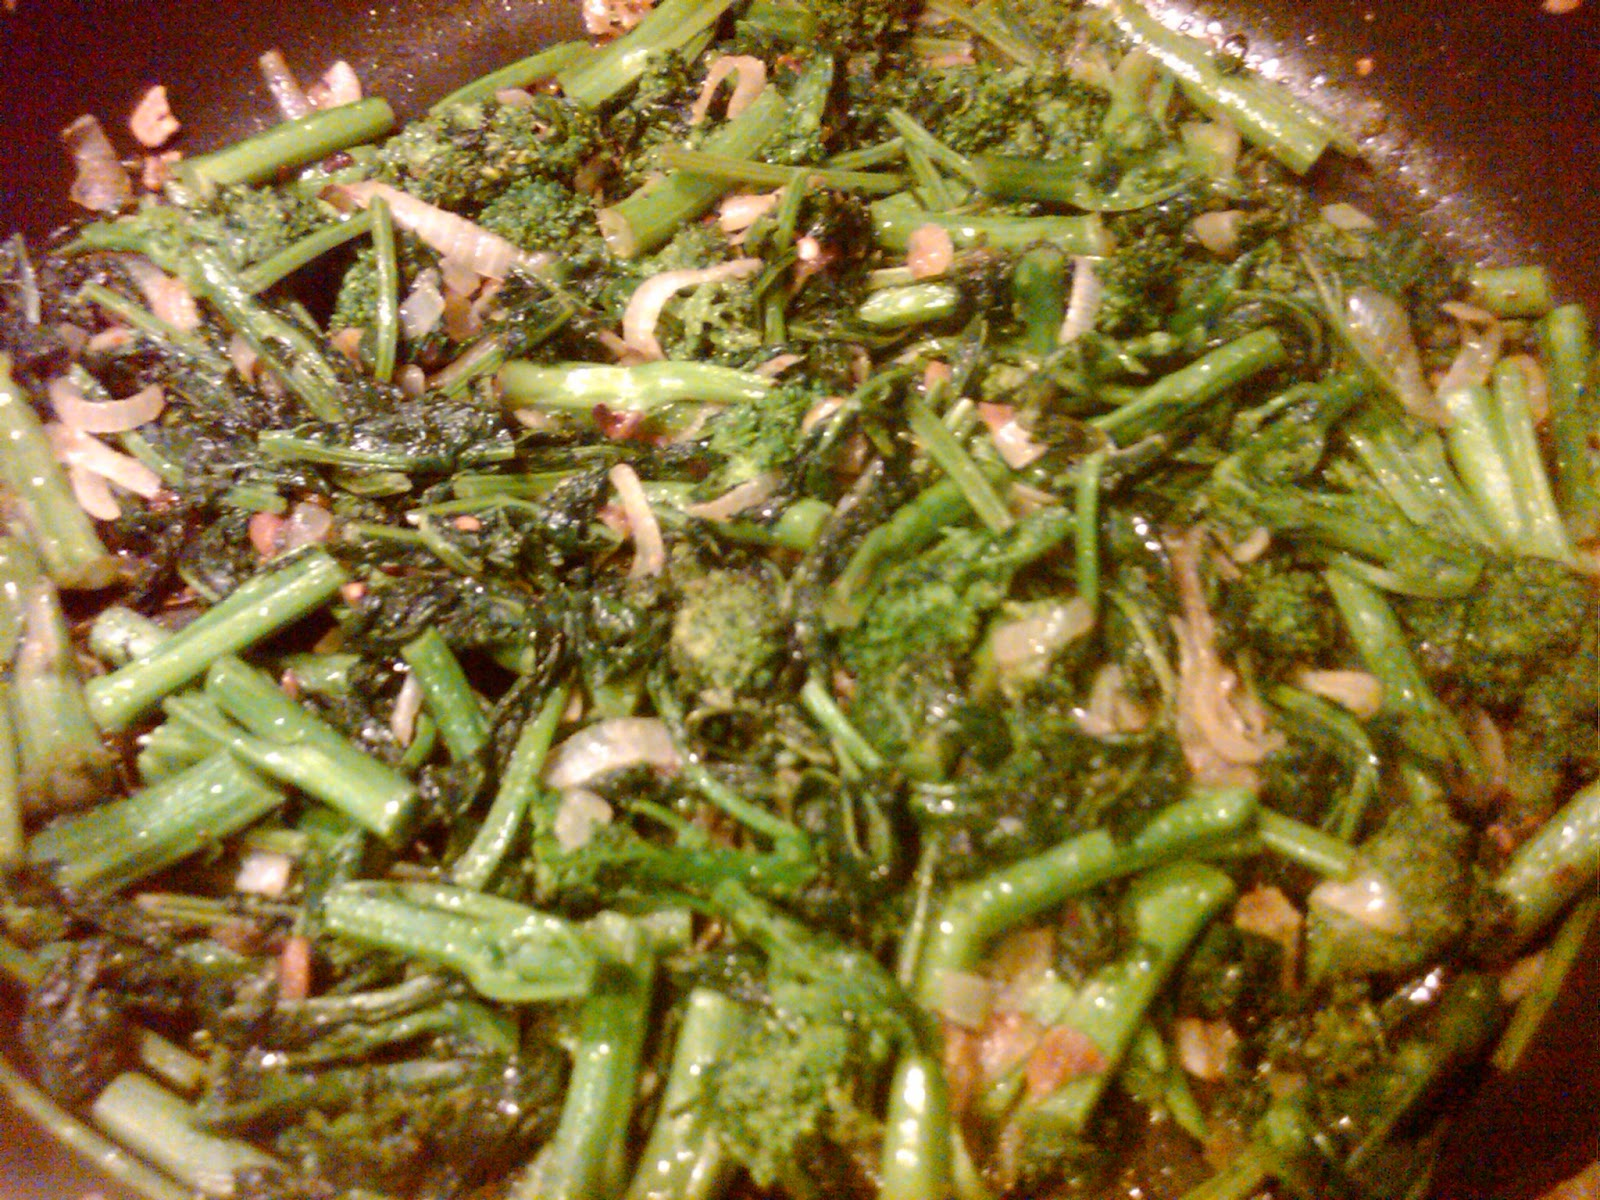 and broccoli rabe lasagna stir fried broccoli rabe spicy broccoli rabe ...